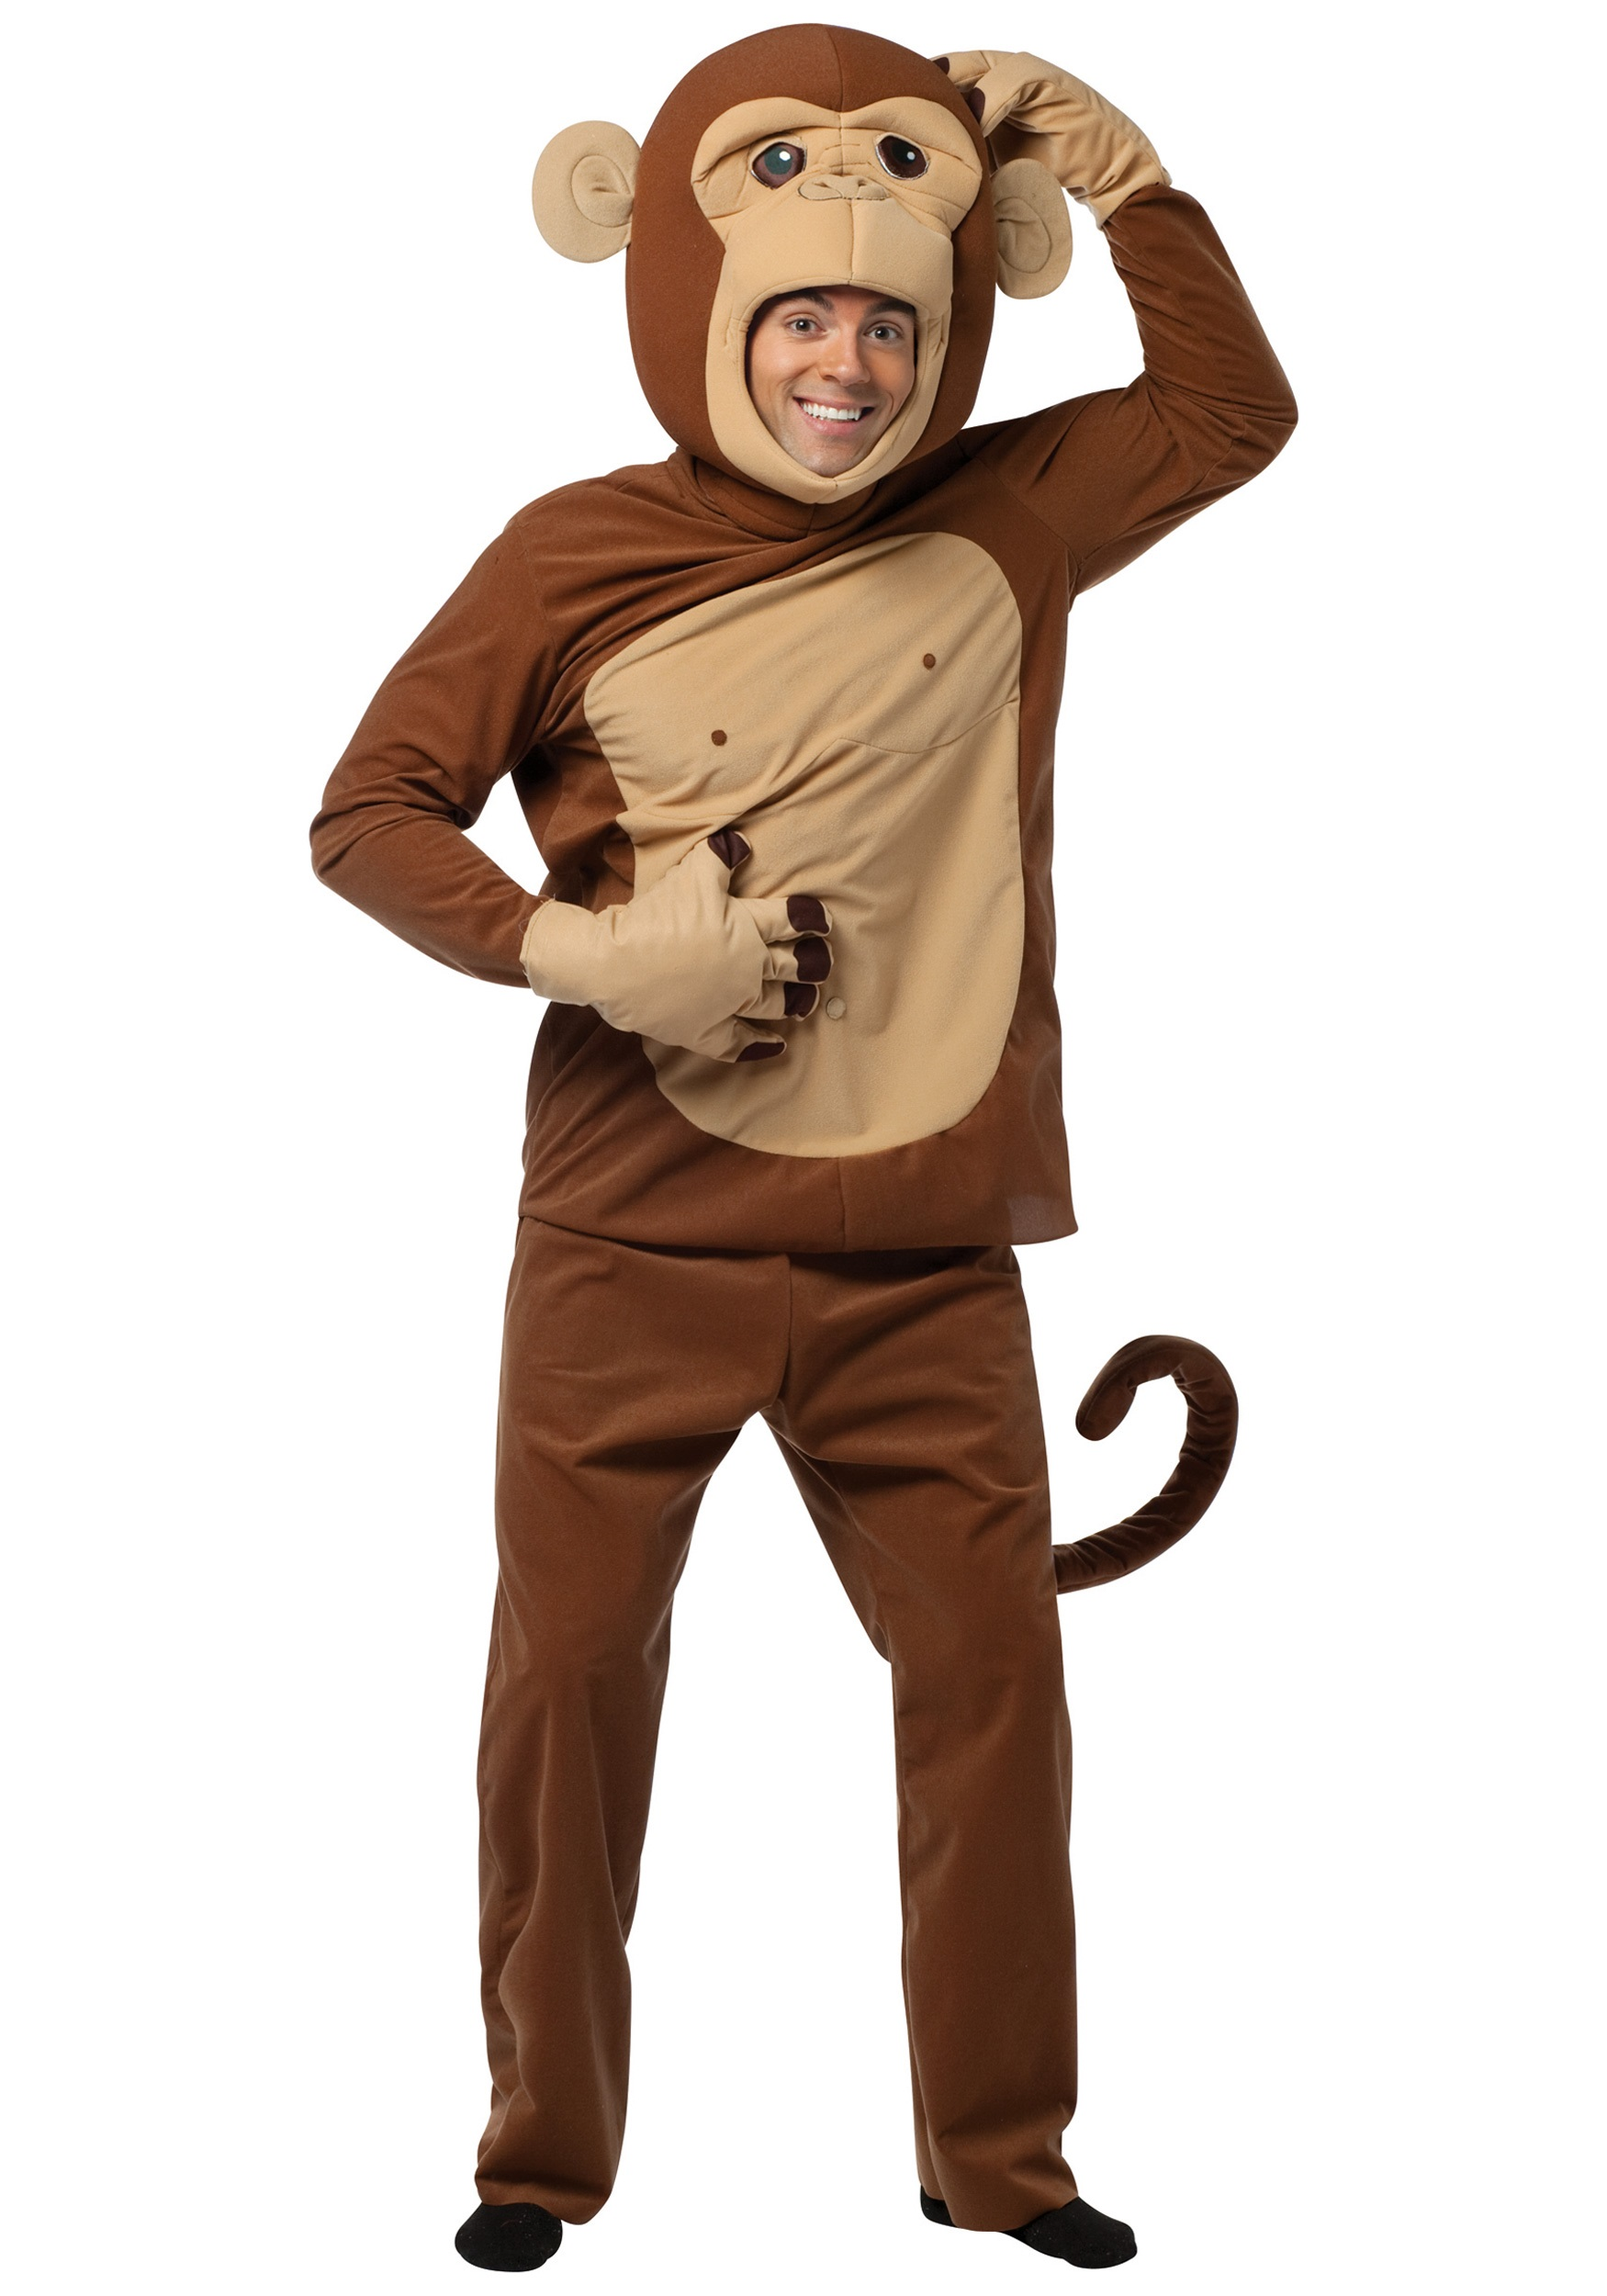 Adult Funky Chimp Costume  sc 1 st  Halloween Costume & Adult Funky Chimp Costume - Silly Animal Costume Ideas for Adults